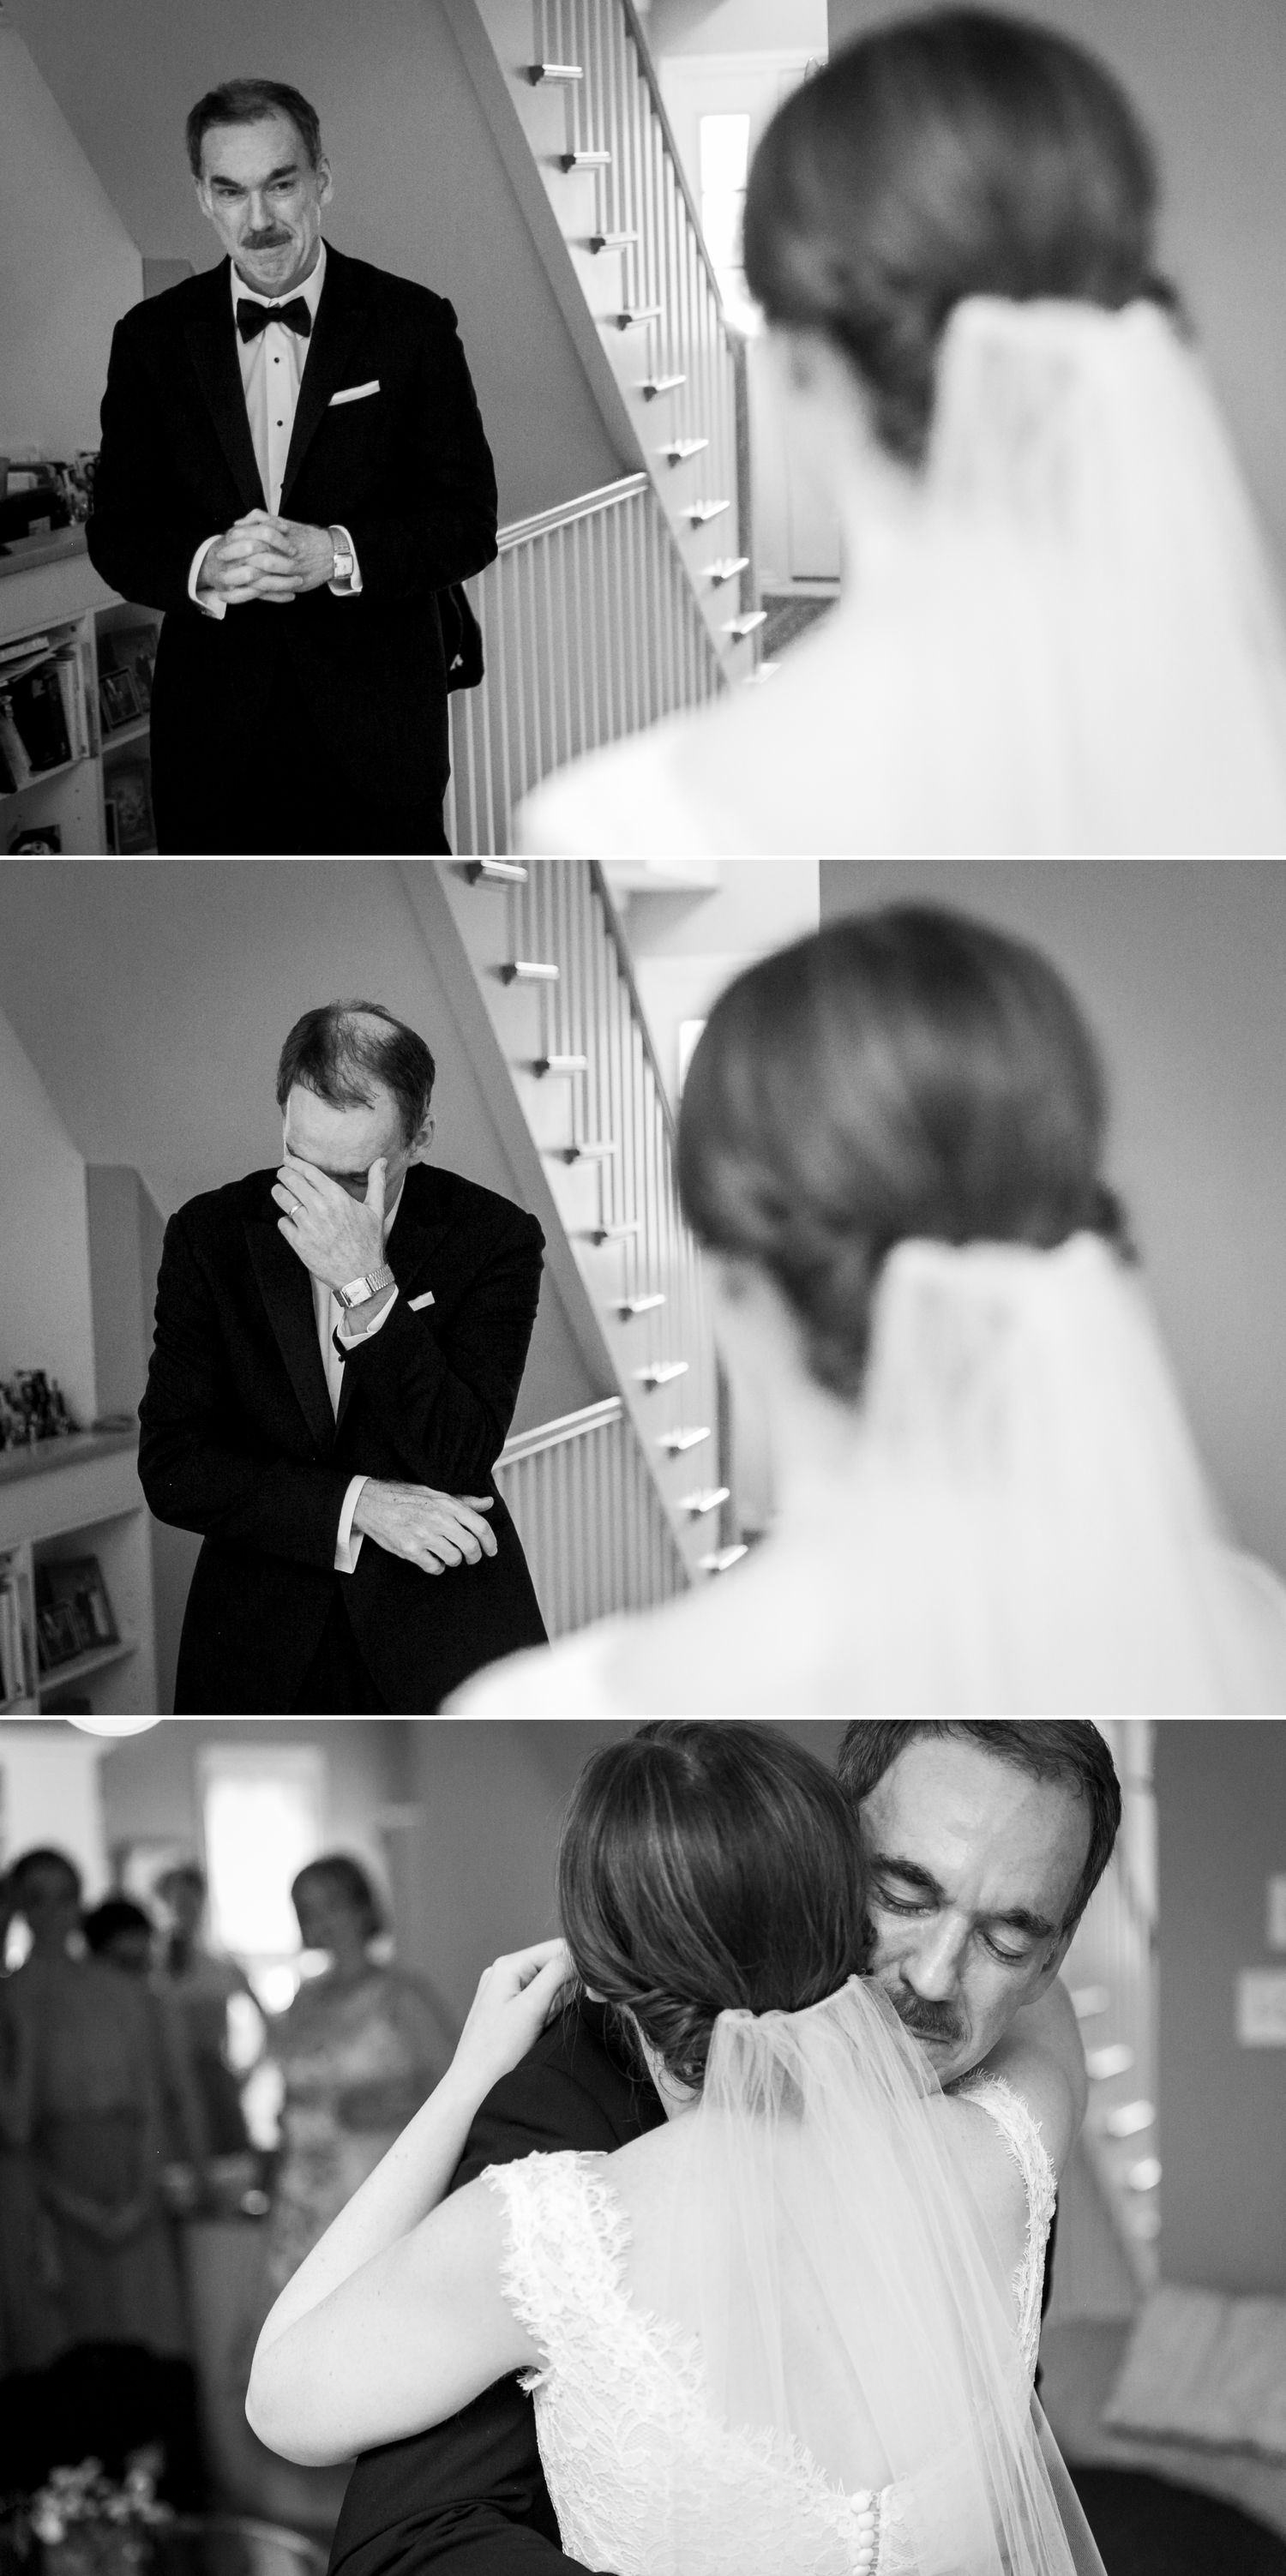 The bride's Father seeing her in her wedding dress for the first time